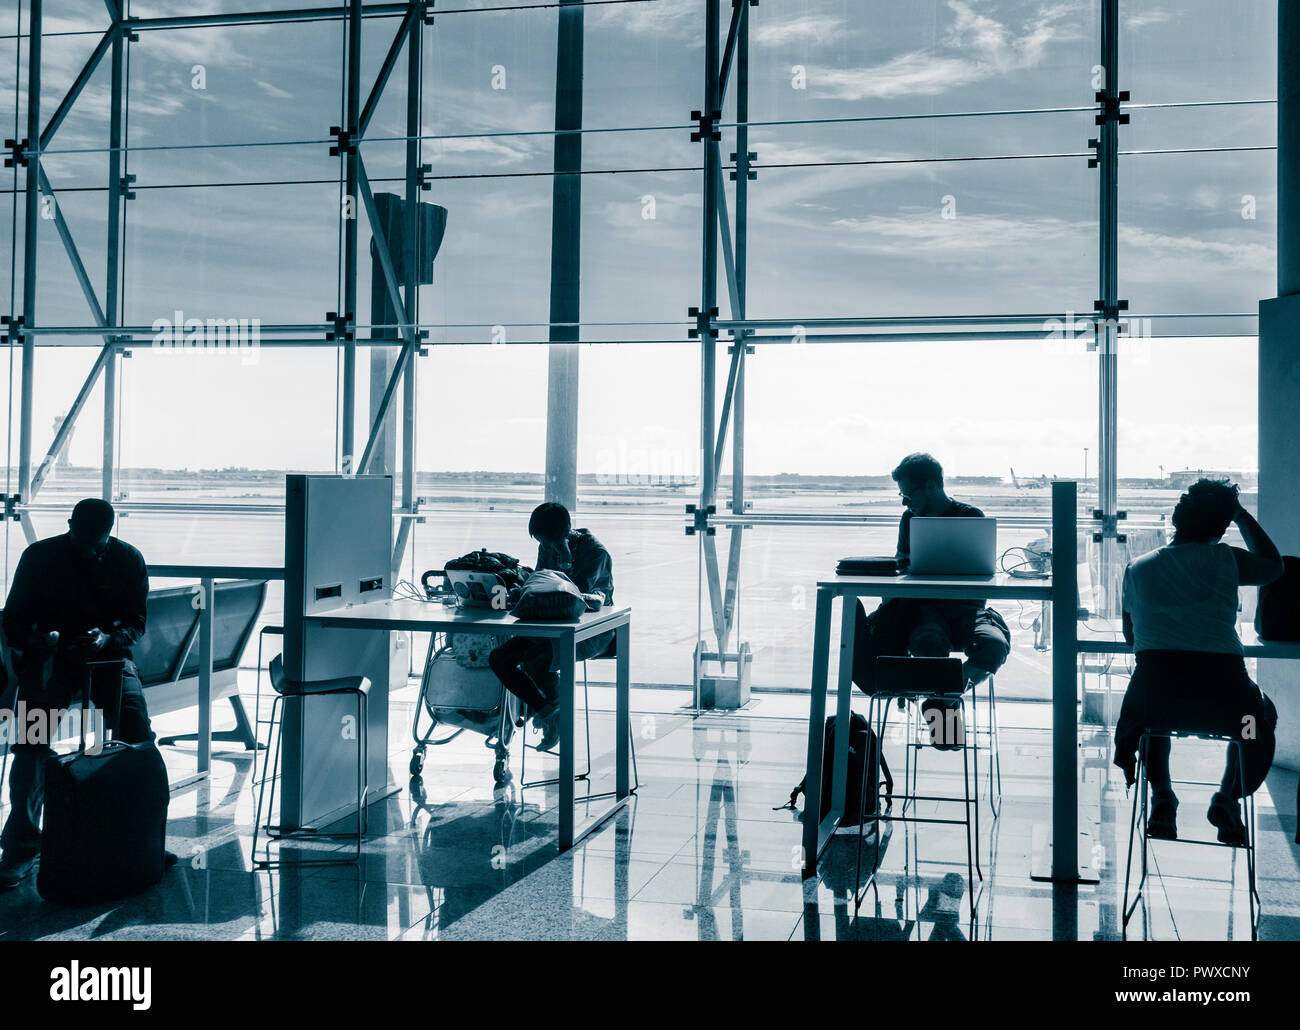 People using mobile devices and laptops in Wifi zone at Barcelona El Prat airport. Spain - Stock Image